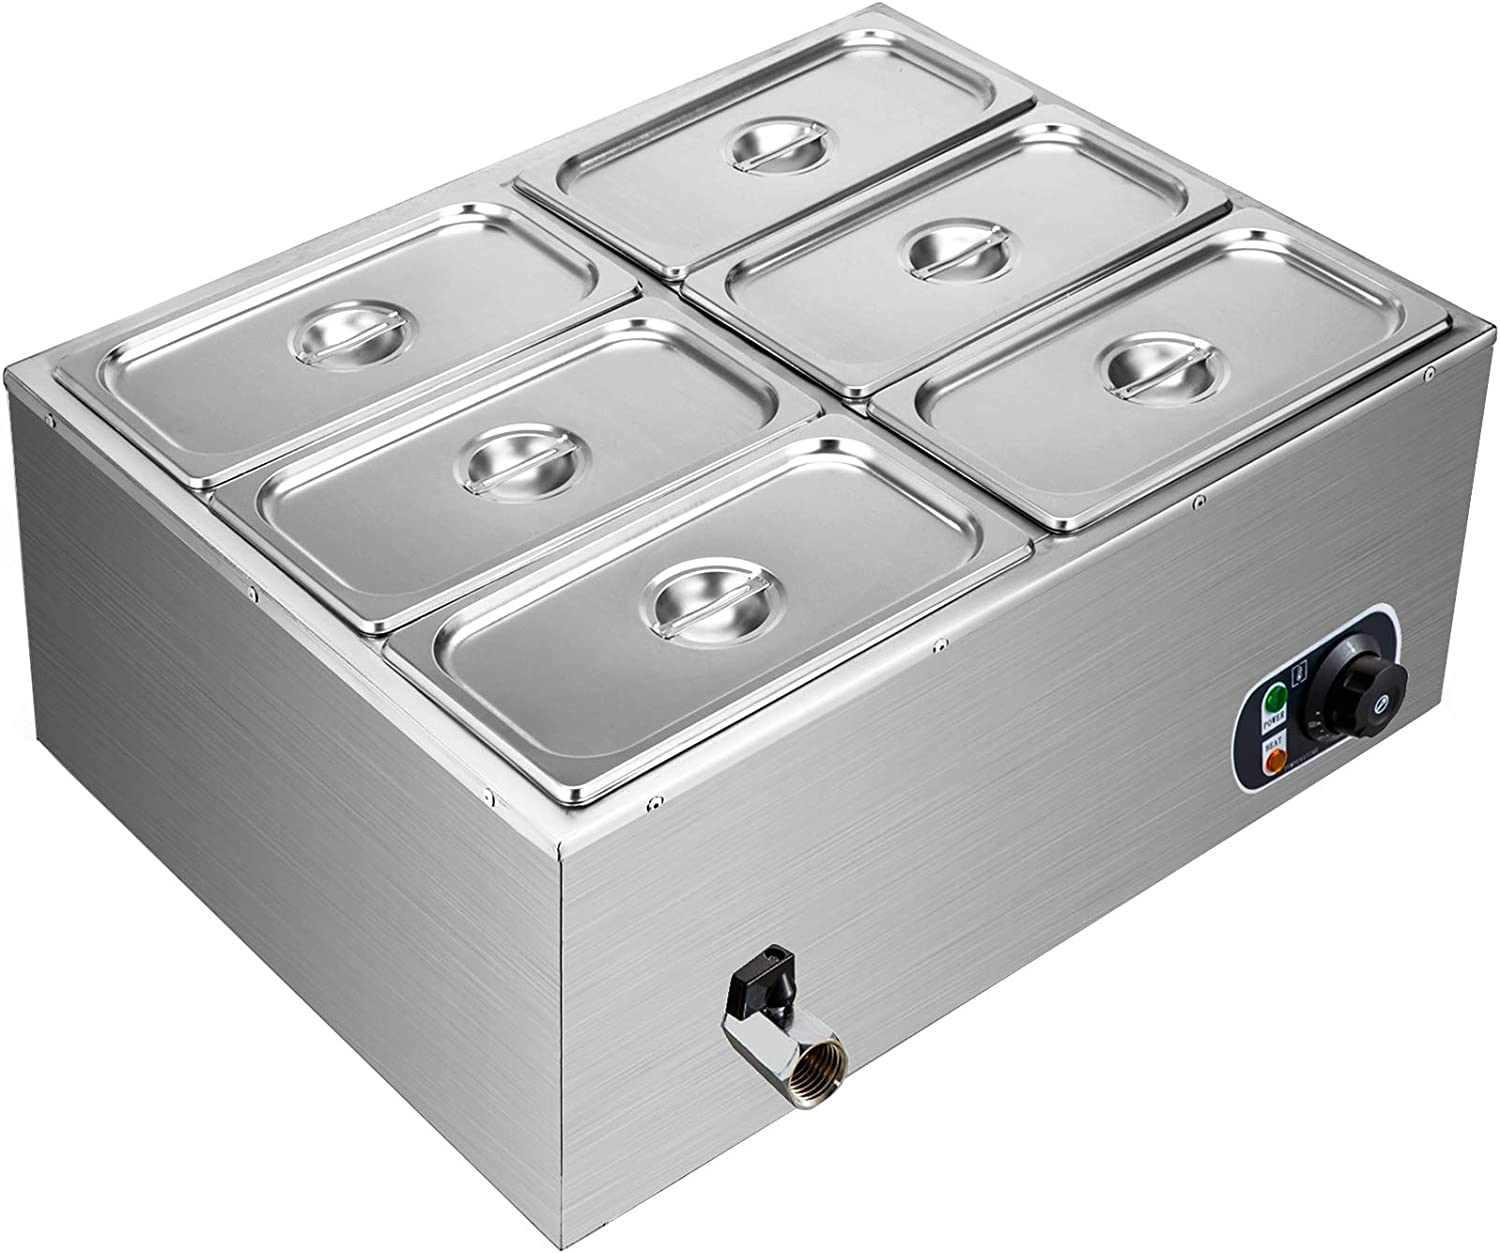 VEVOR 110V 6-Pan Commercial Food Warmer 850W Electric Countertop Steam Table 15cm/6inch Deep Stainless Steel Bain Marie Buffet Large Capacity 7 Quart